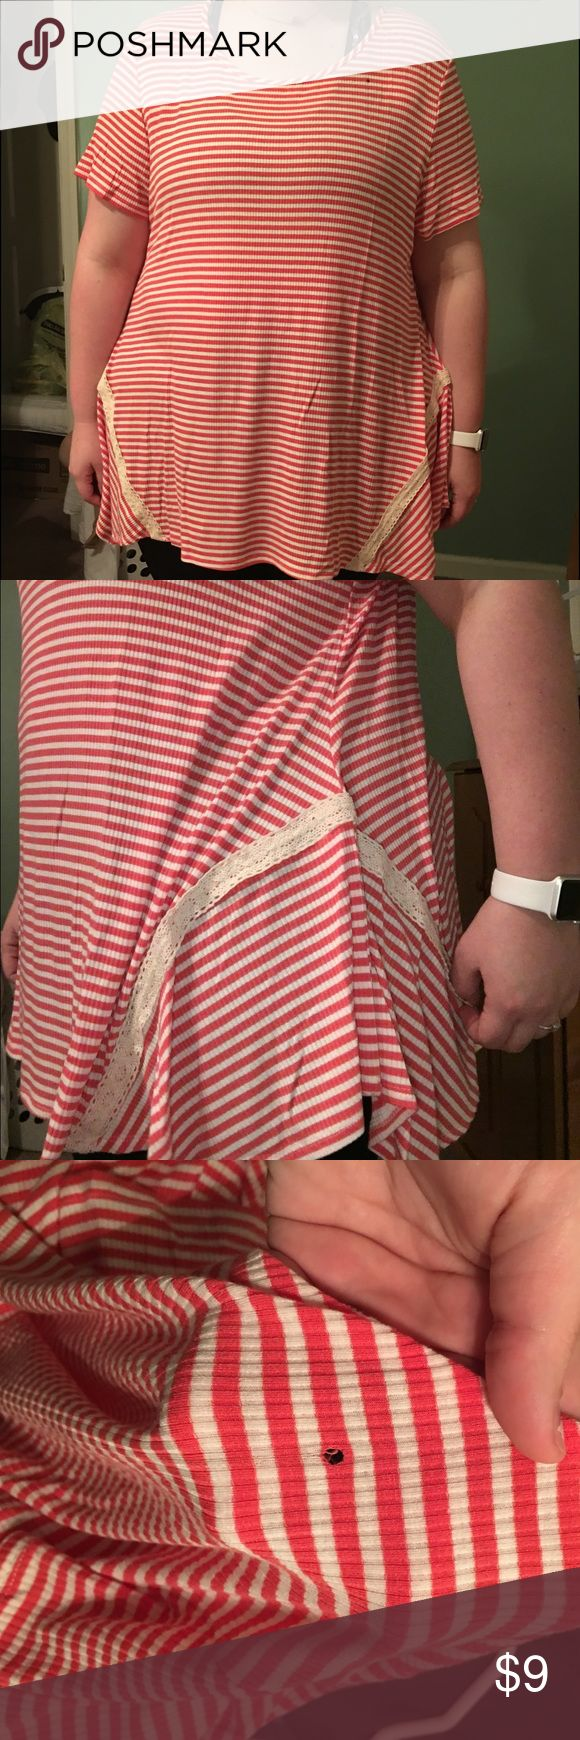 Red and white striped shirt Longer shirt that flows. It does have a small hole in the front but not too noticeable picture is listed Tops Blouses